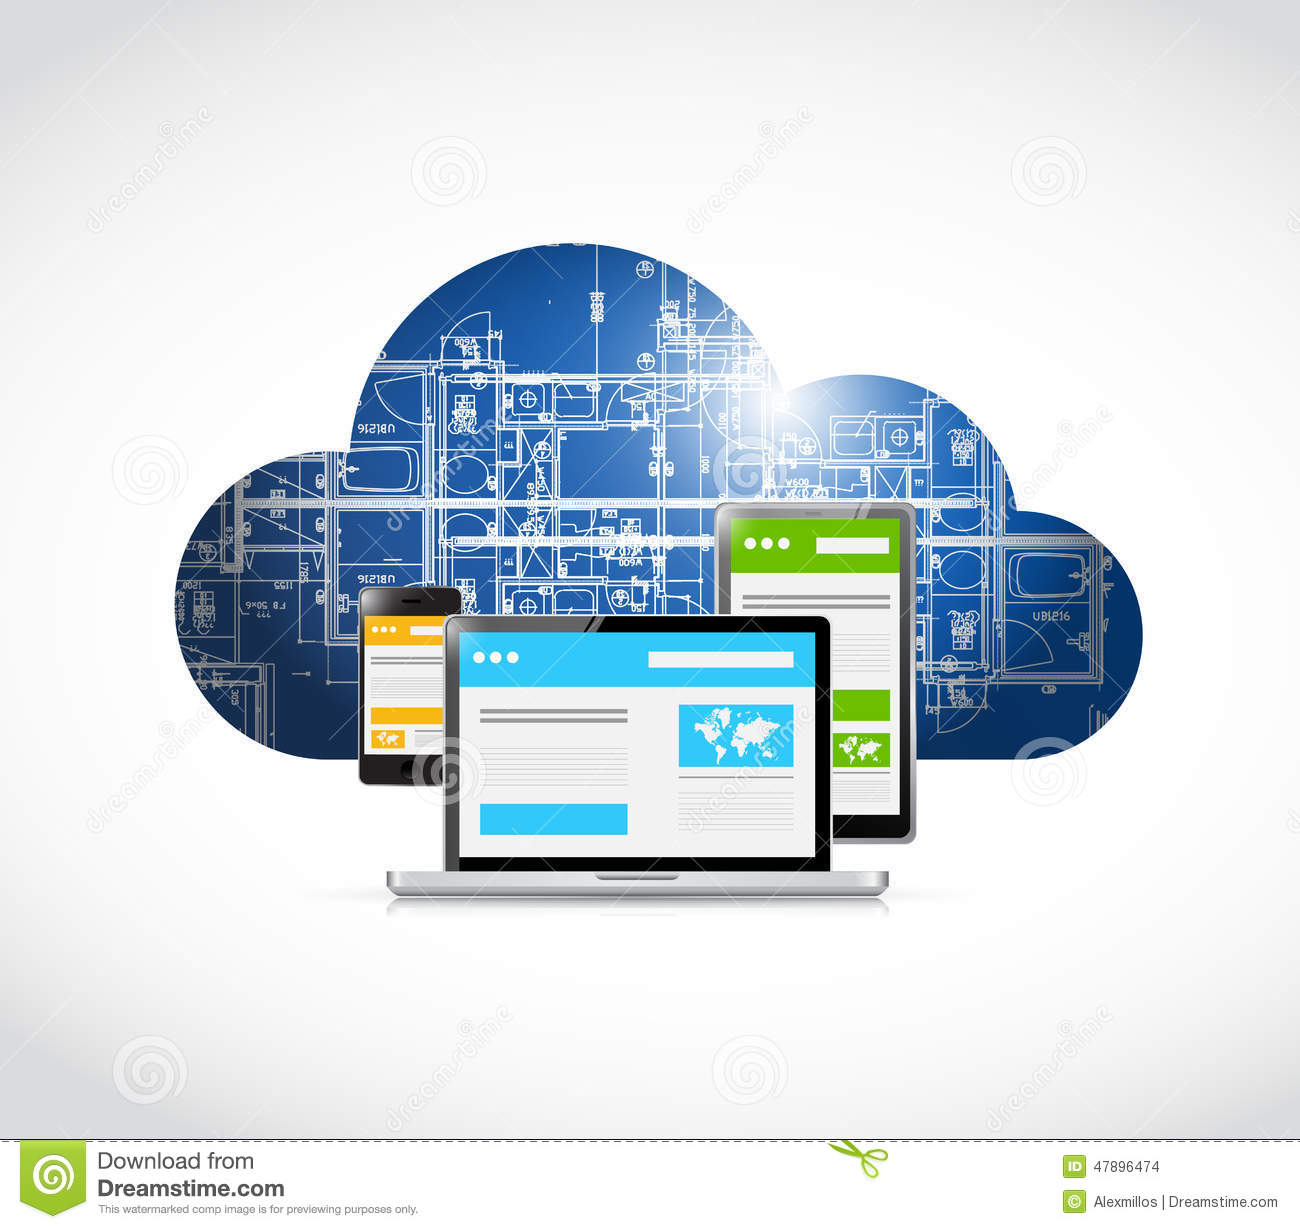 Responsive web technology blueprint cloud stock illustration responsive web technology blueprint cloud malvernweather Image collections